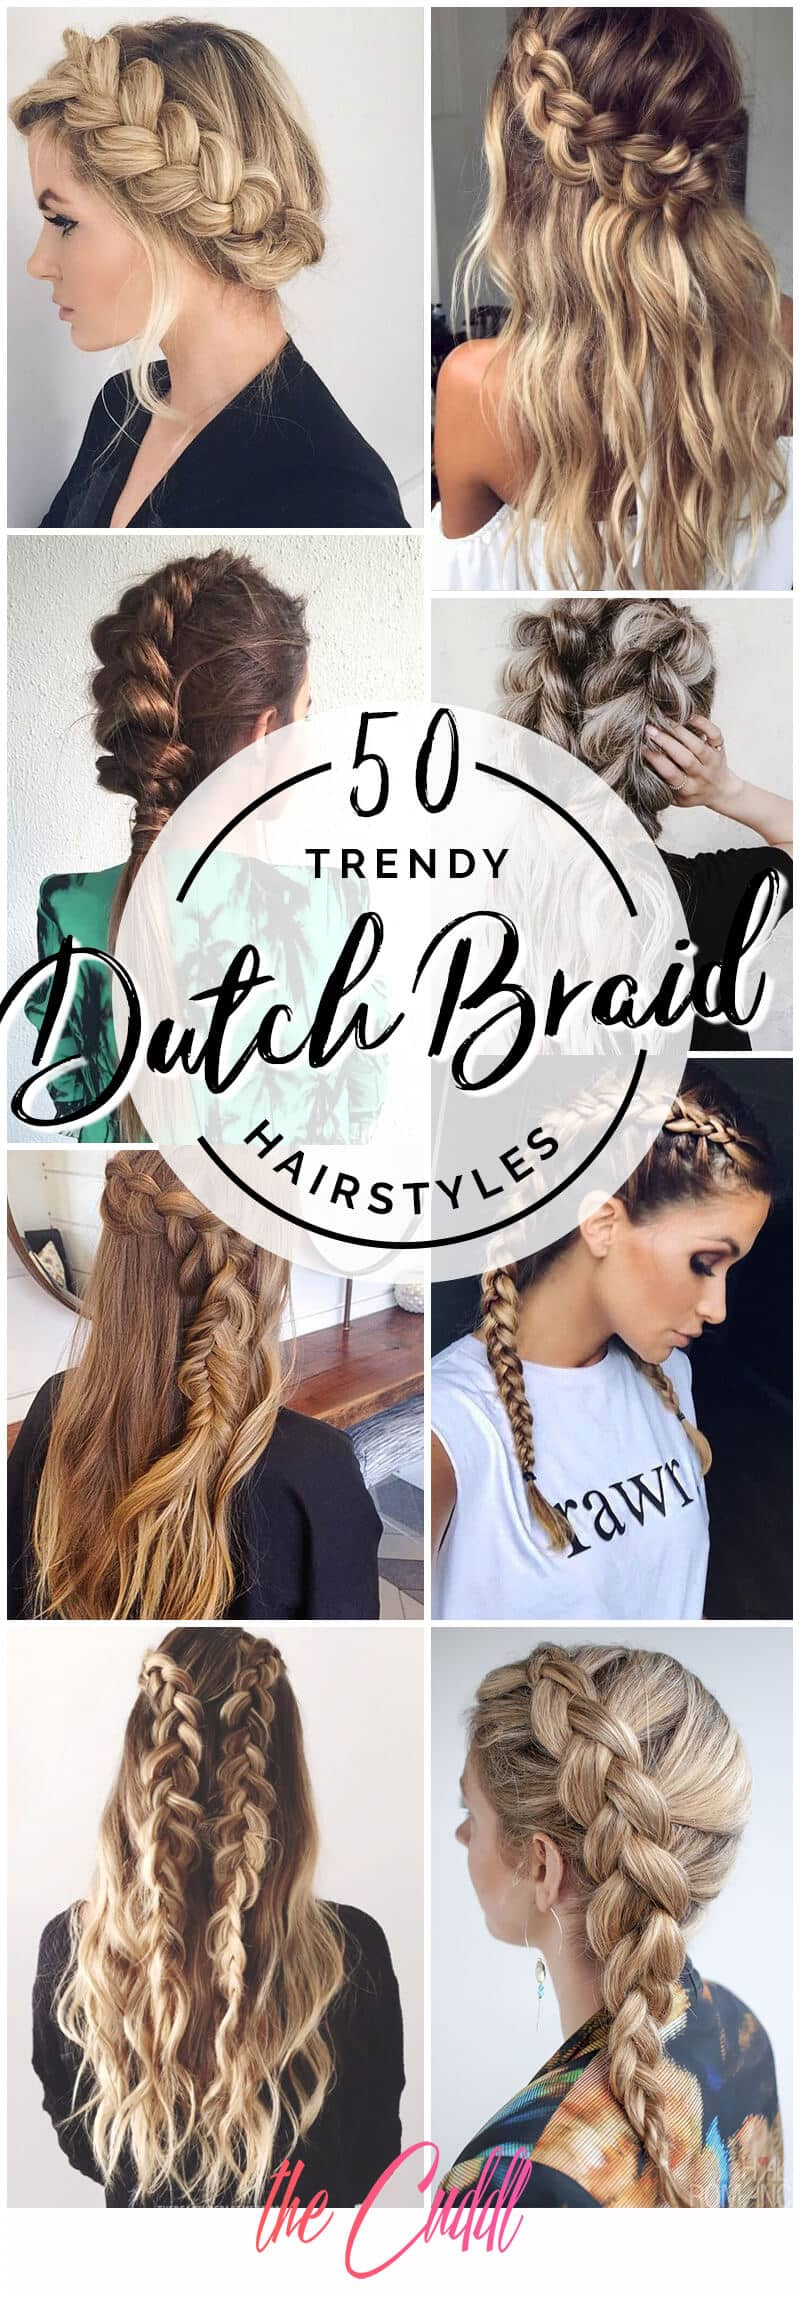 10 Trendy Dutch Braids Hairstyle Ideas to Keep You Cool in 10